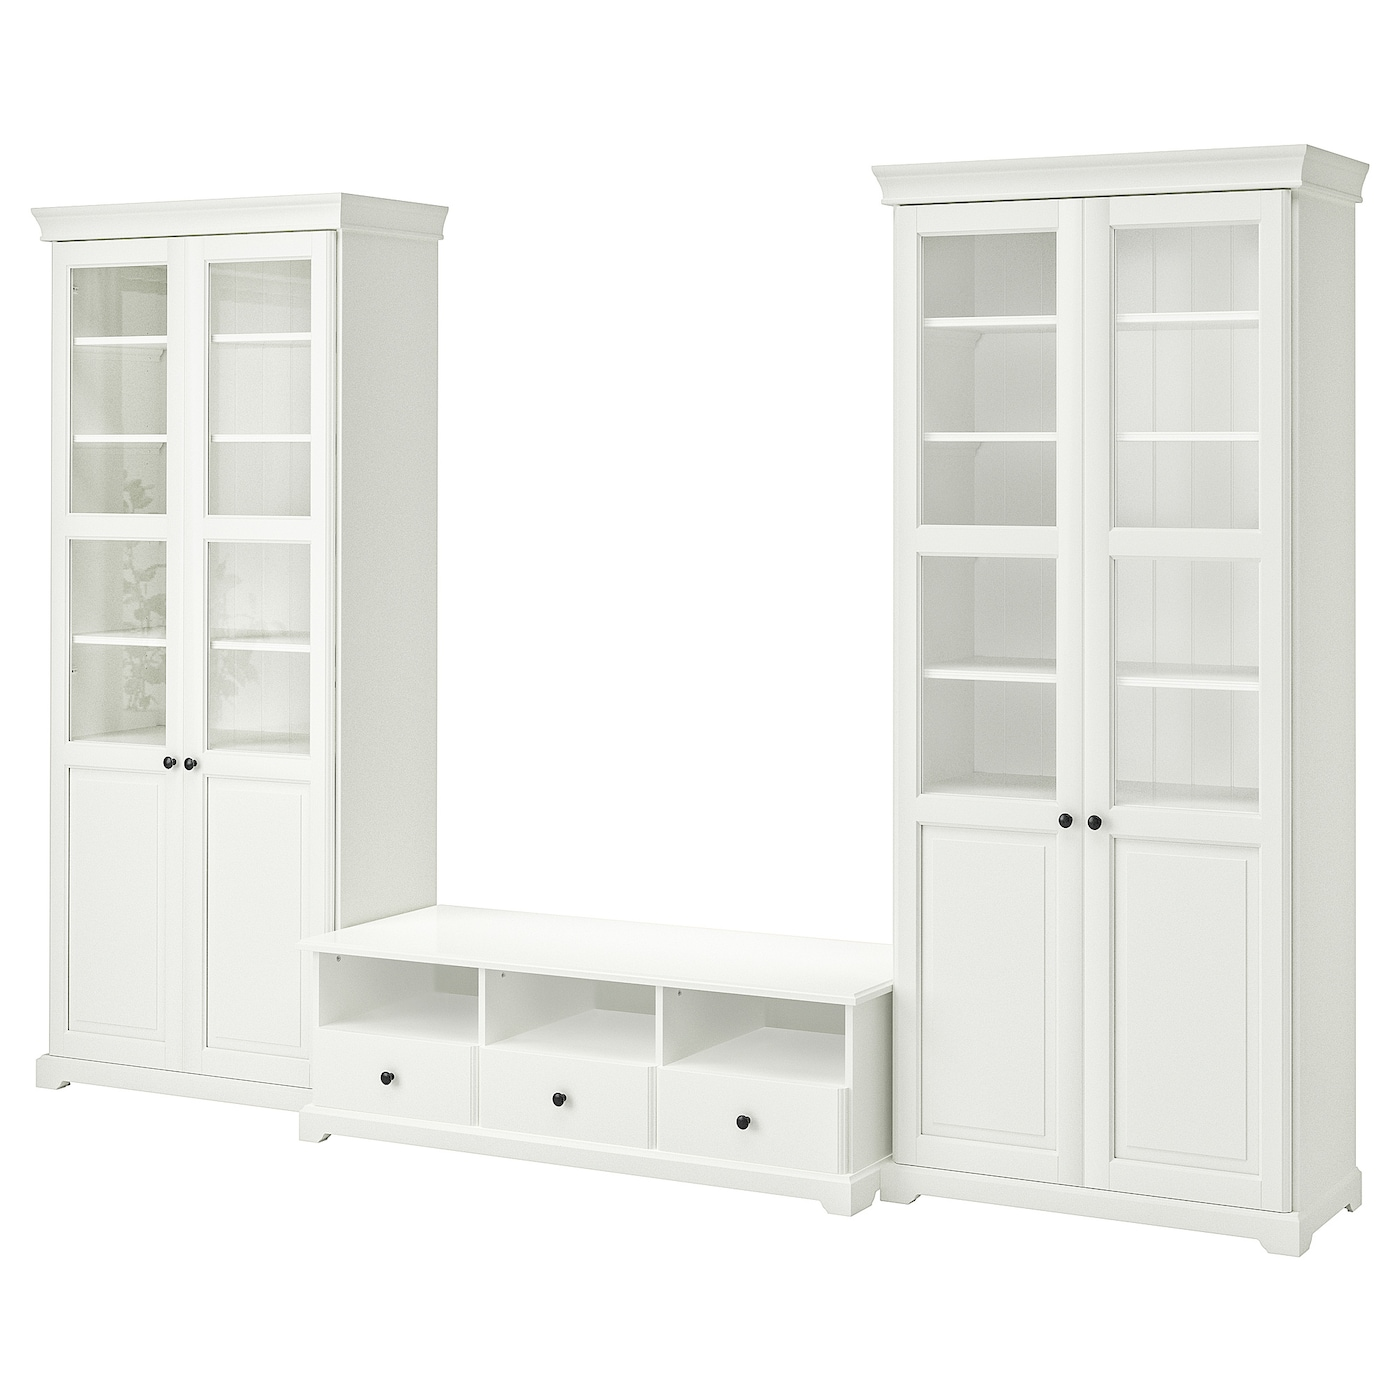 IKEA LIATORP TV storage combination Adjustable feet; stands steady also on an uneven floor.